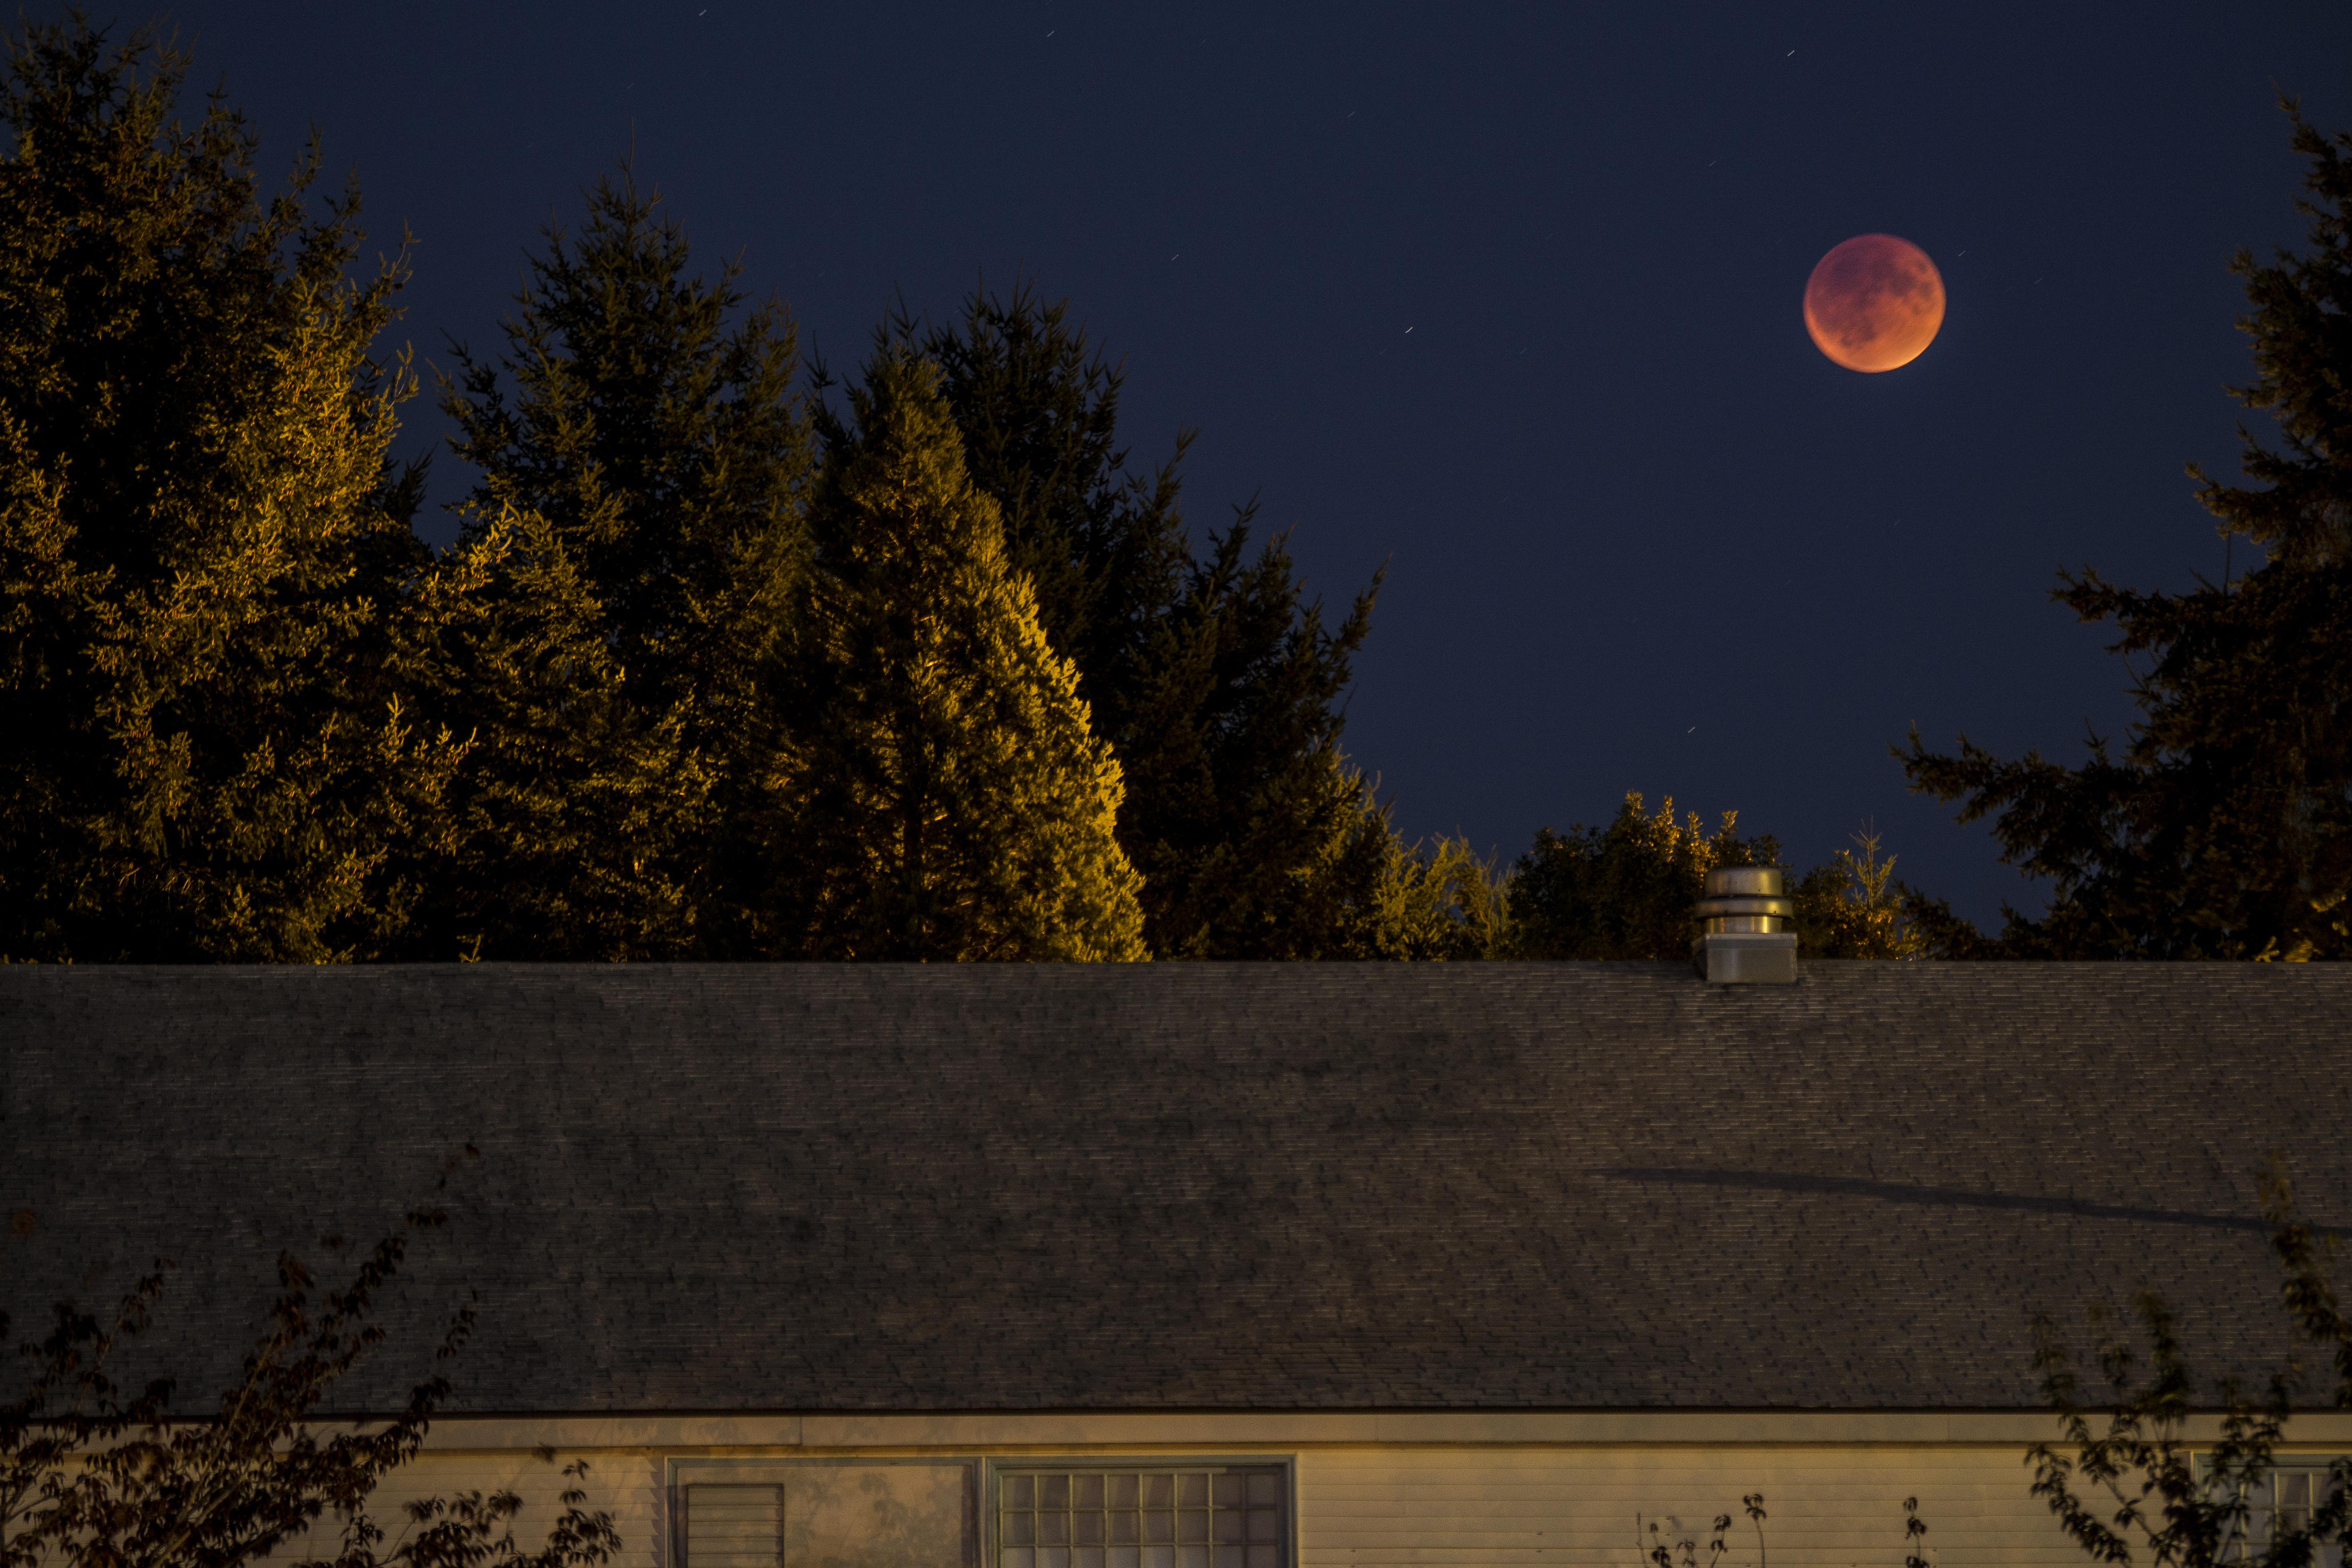 Blood Moon over RSE, September 27, 2015. Photo Credit: Kirk Diaz